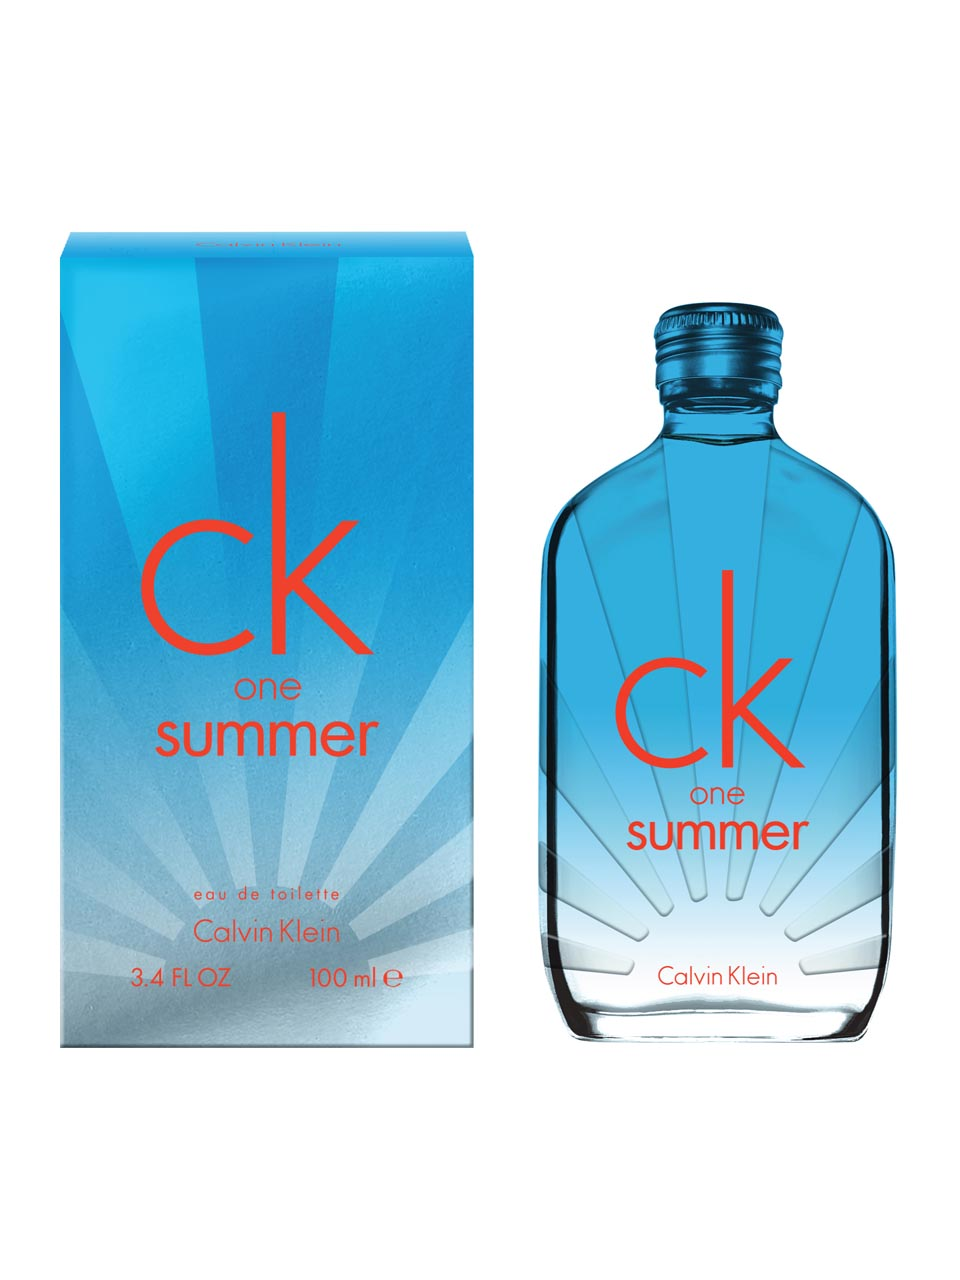 Calvin Klein One Summer 100ml